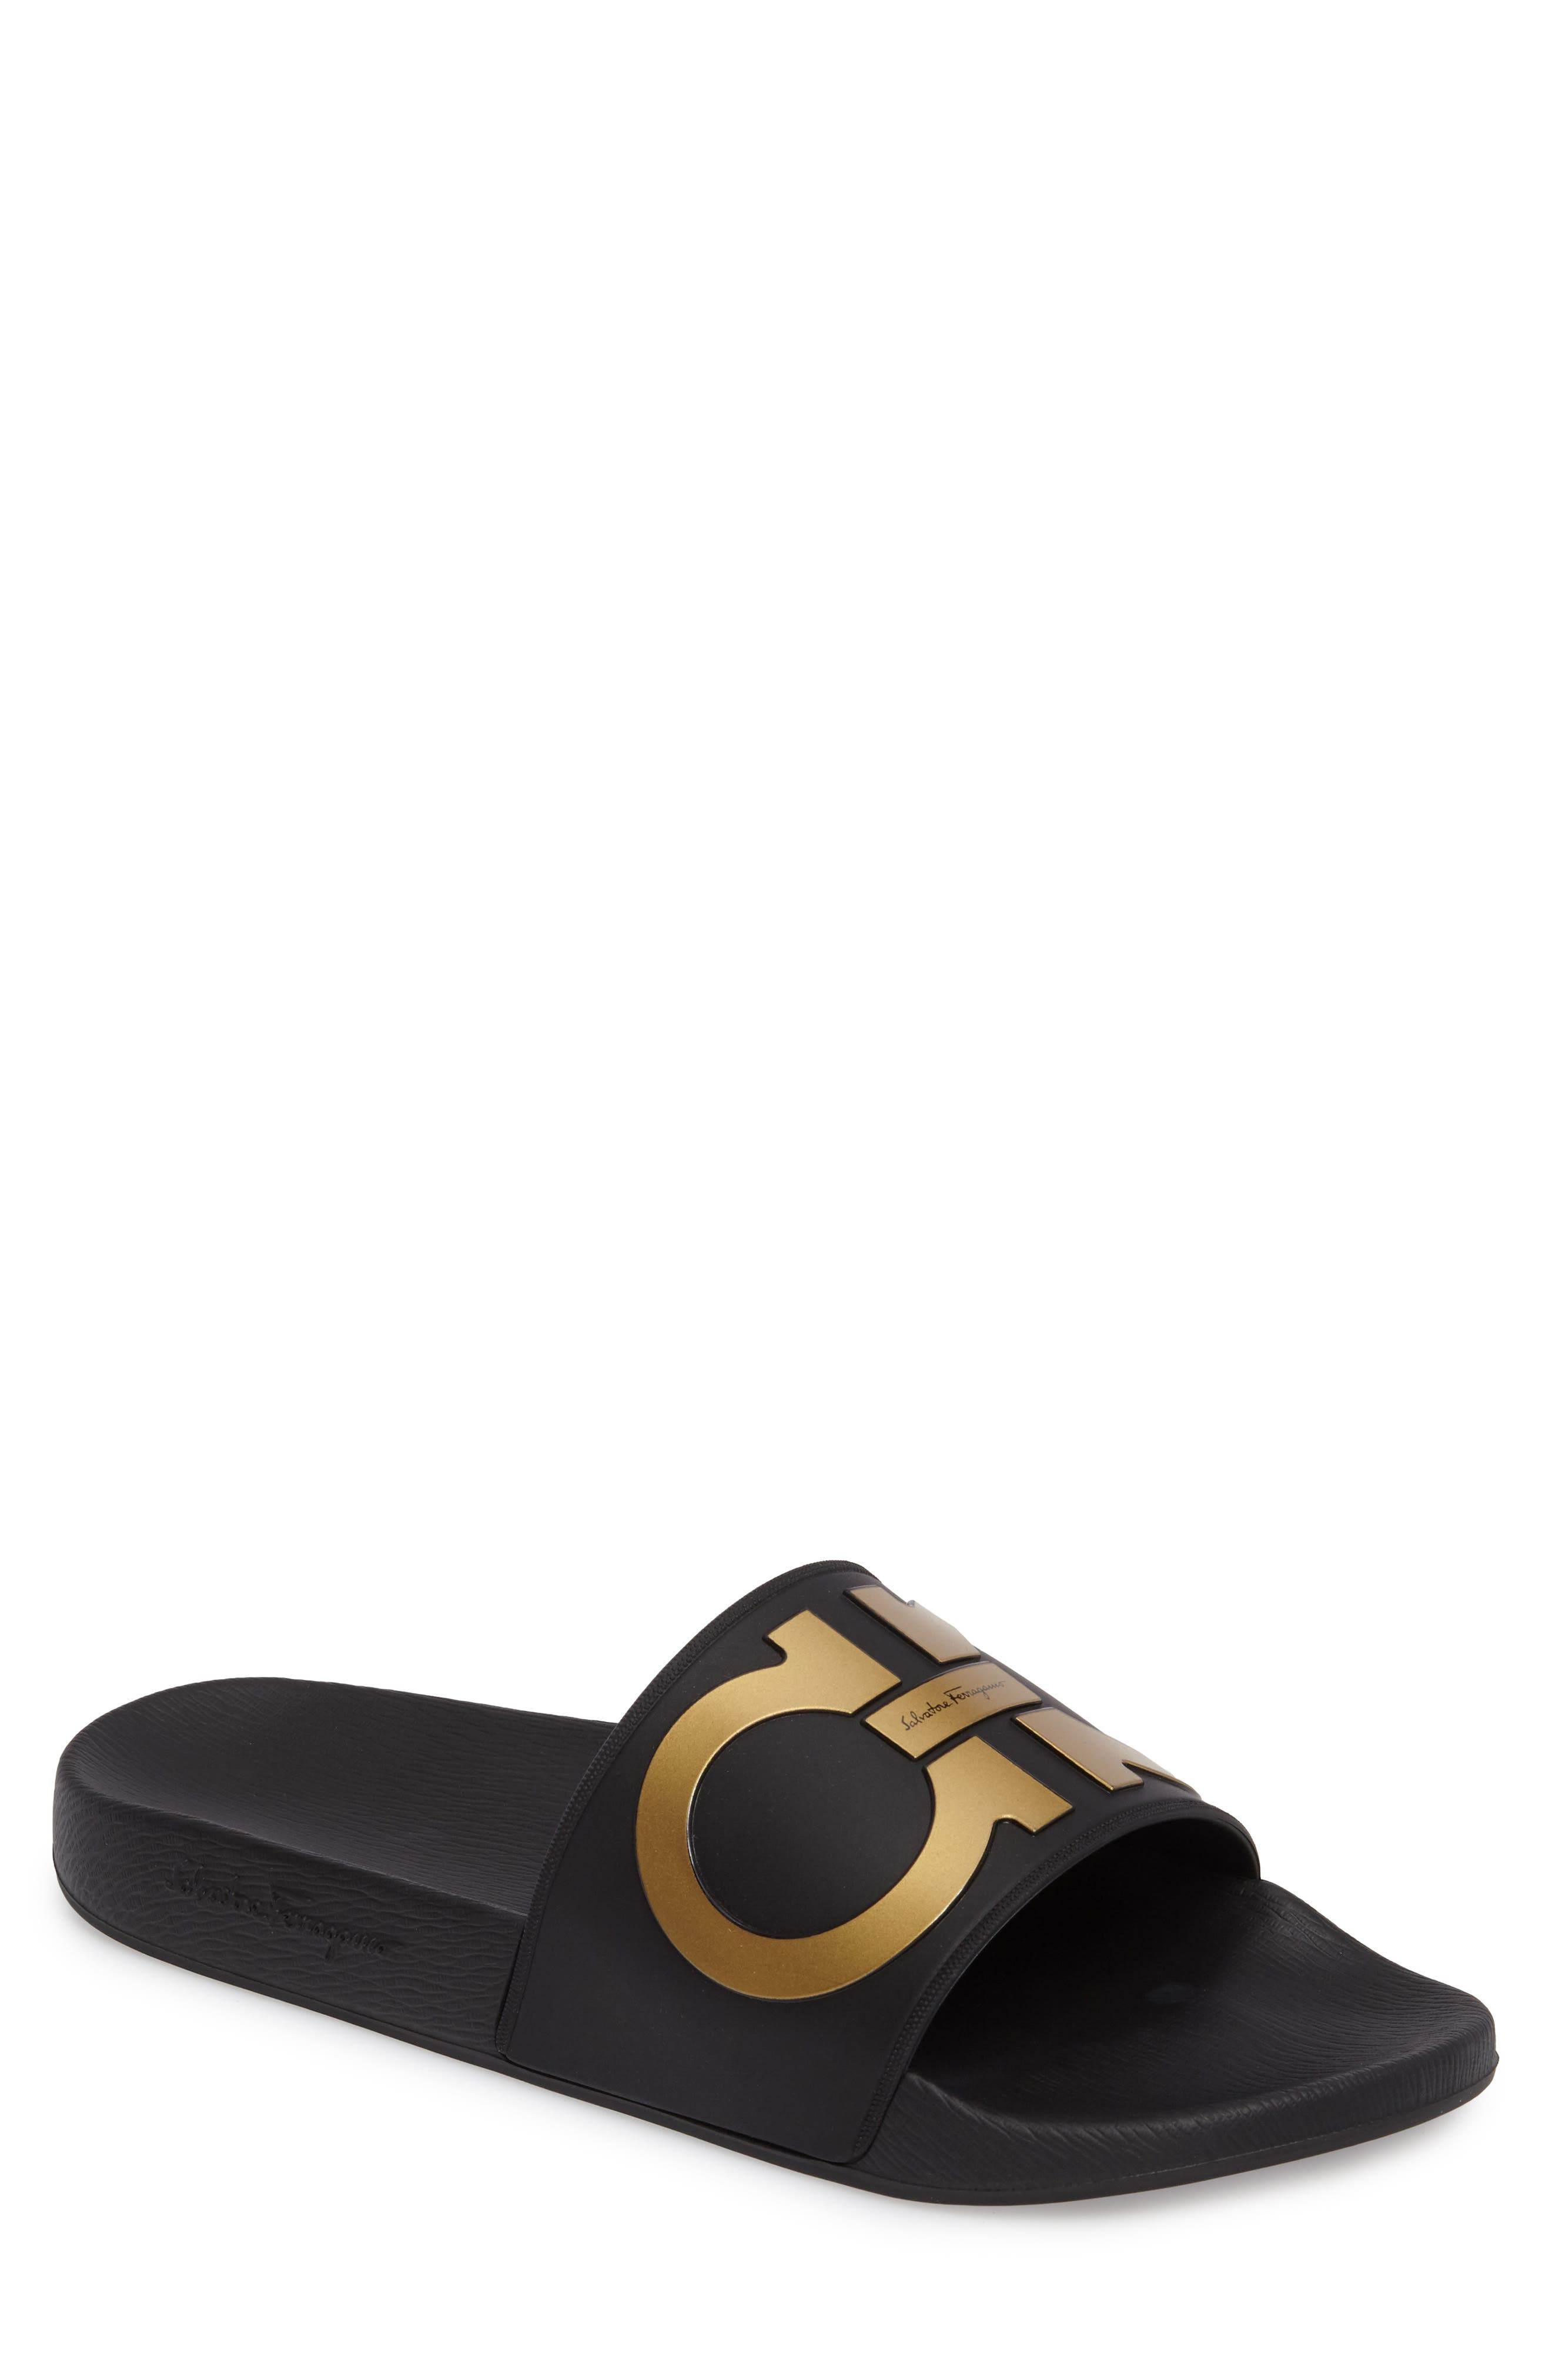 Groove 2 Slide Sandal,                             Main thumbnail 1, color,                             BLACK/GOLD